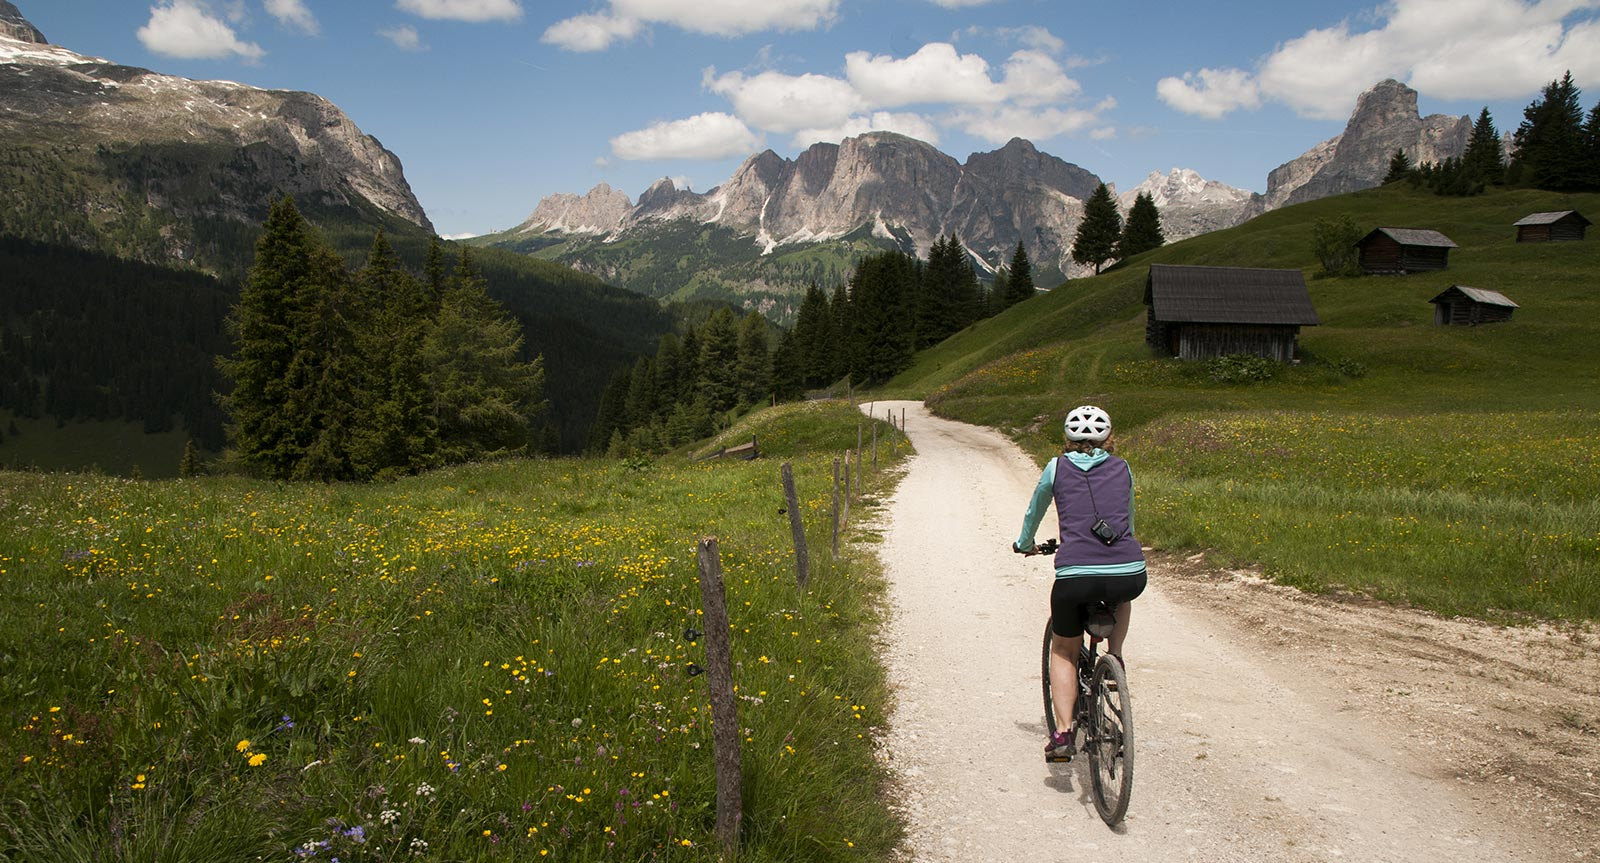 a mountain bike rider on a natural road in Alta Badia